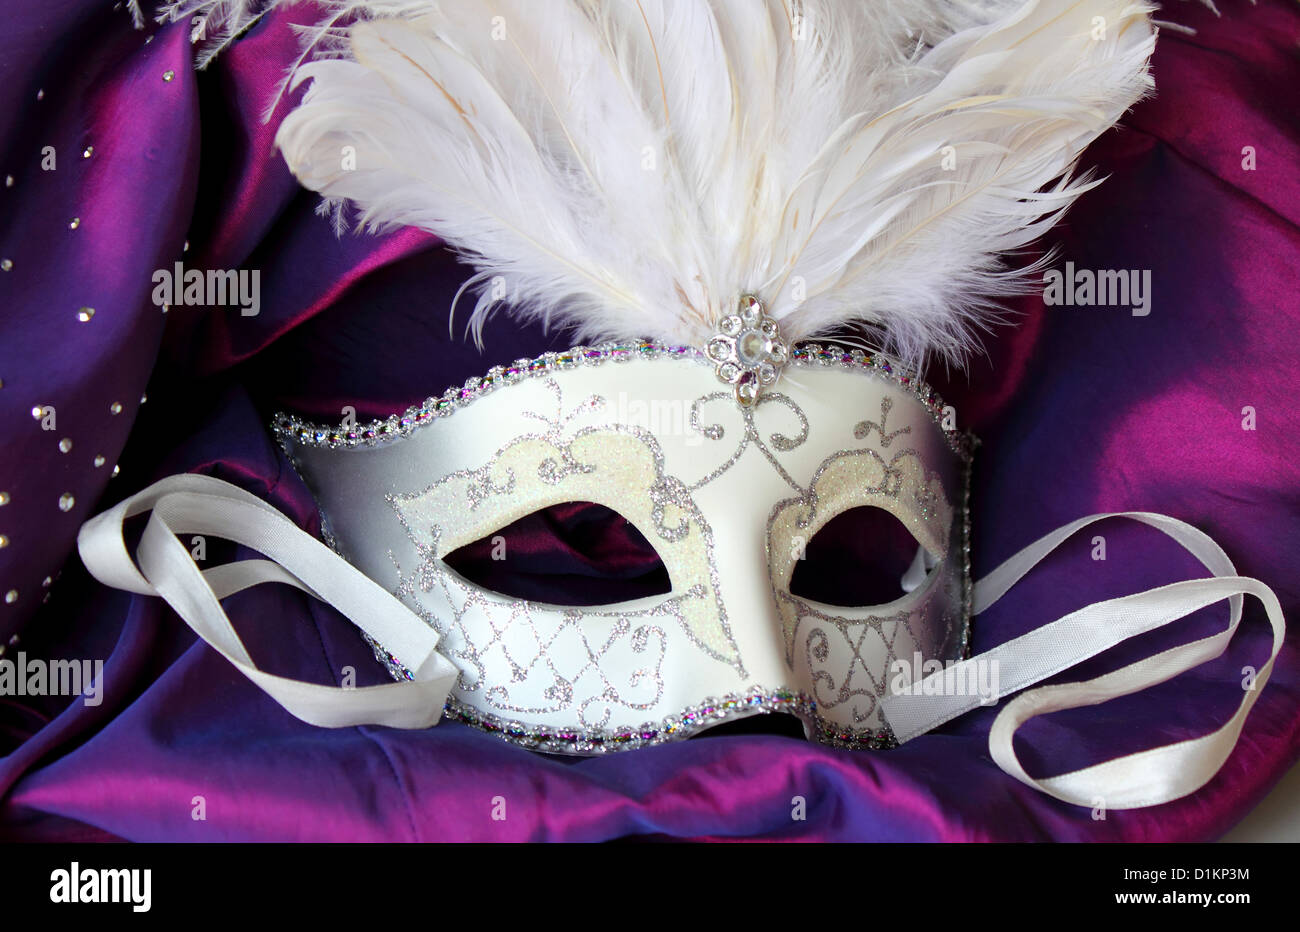 bf9501e96109 A mardi gras masquerade ball mask on a dress made from purple satin ...